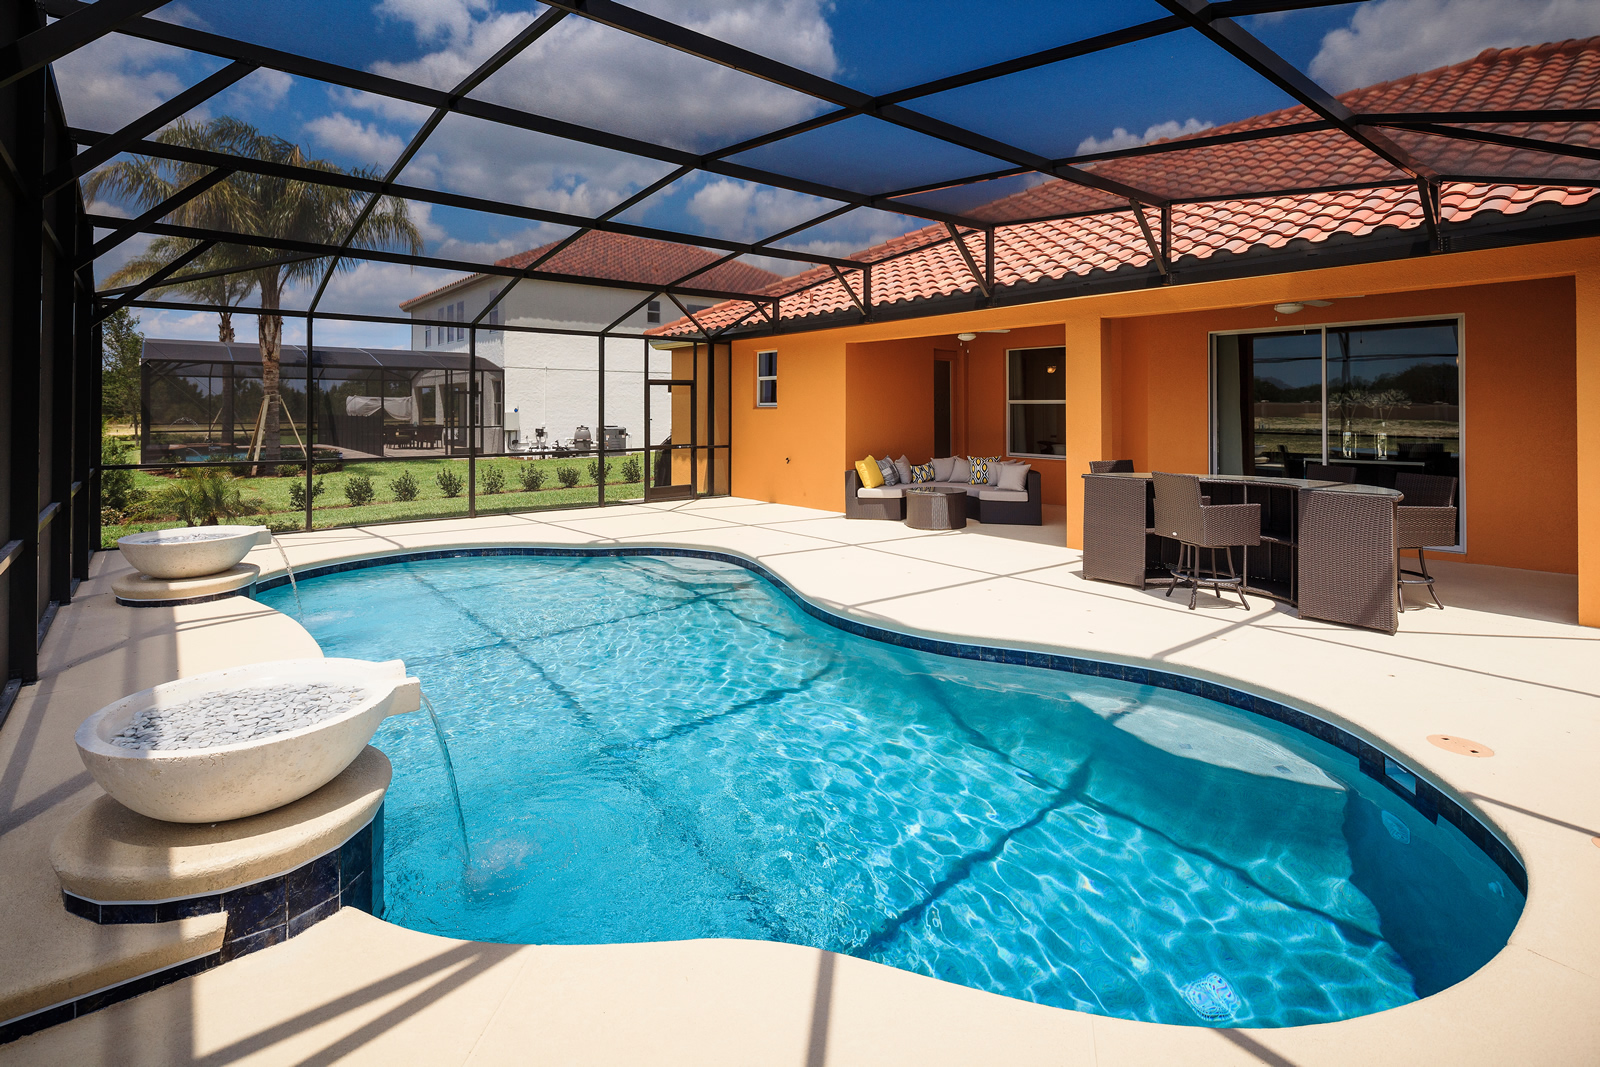 How to buy a Vacation Home in Orlando